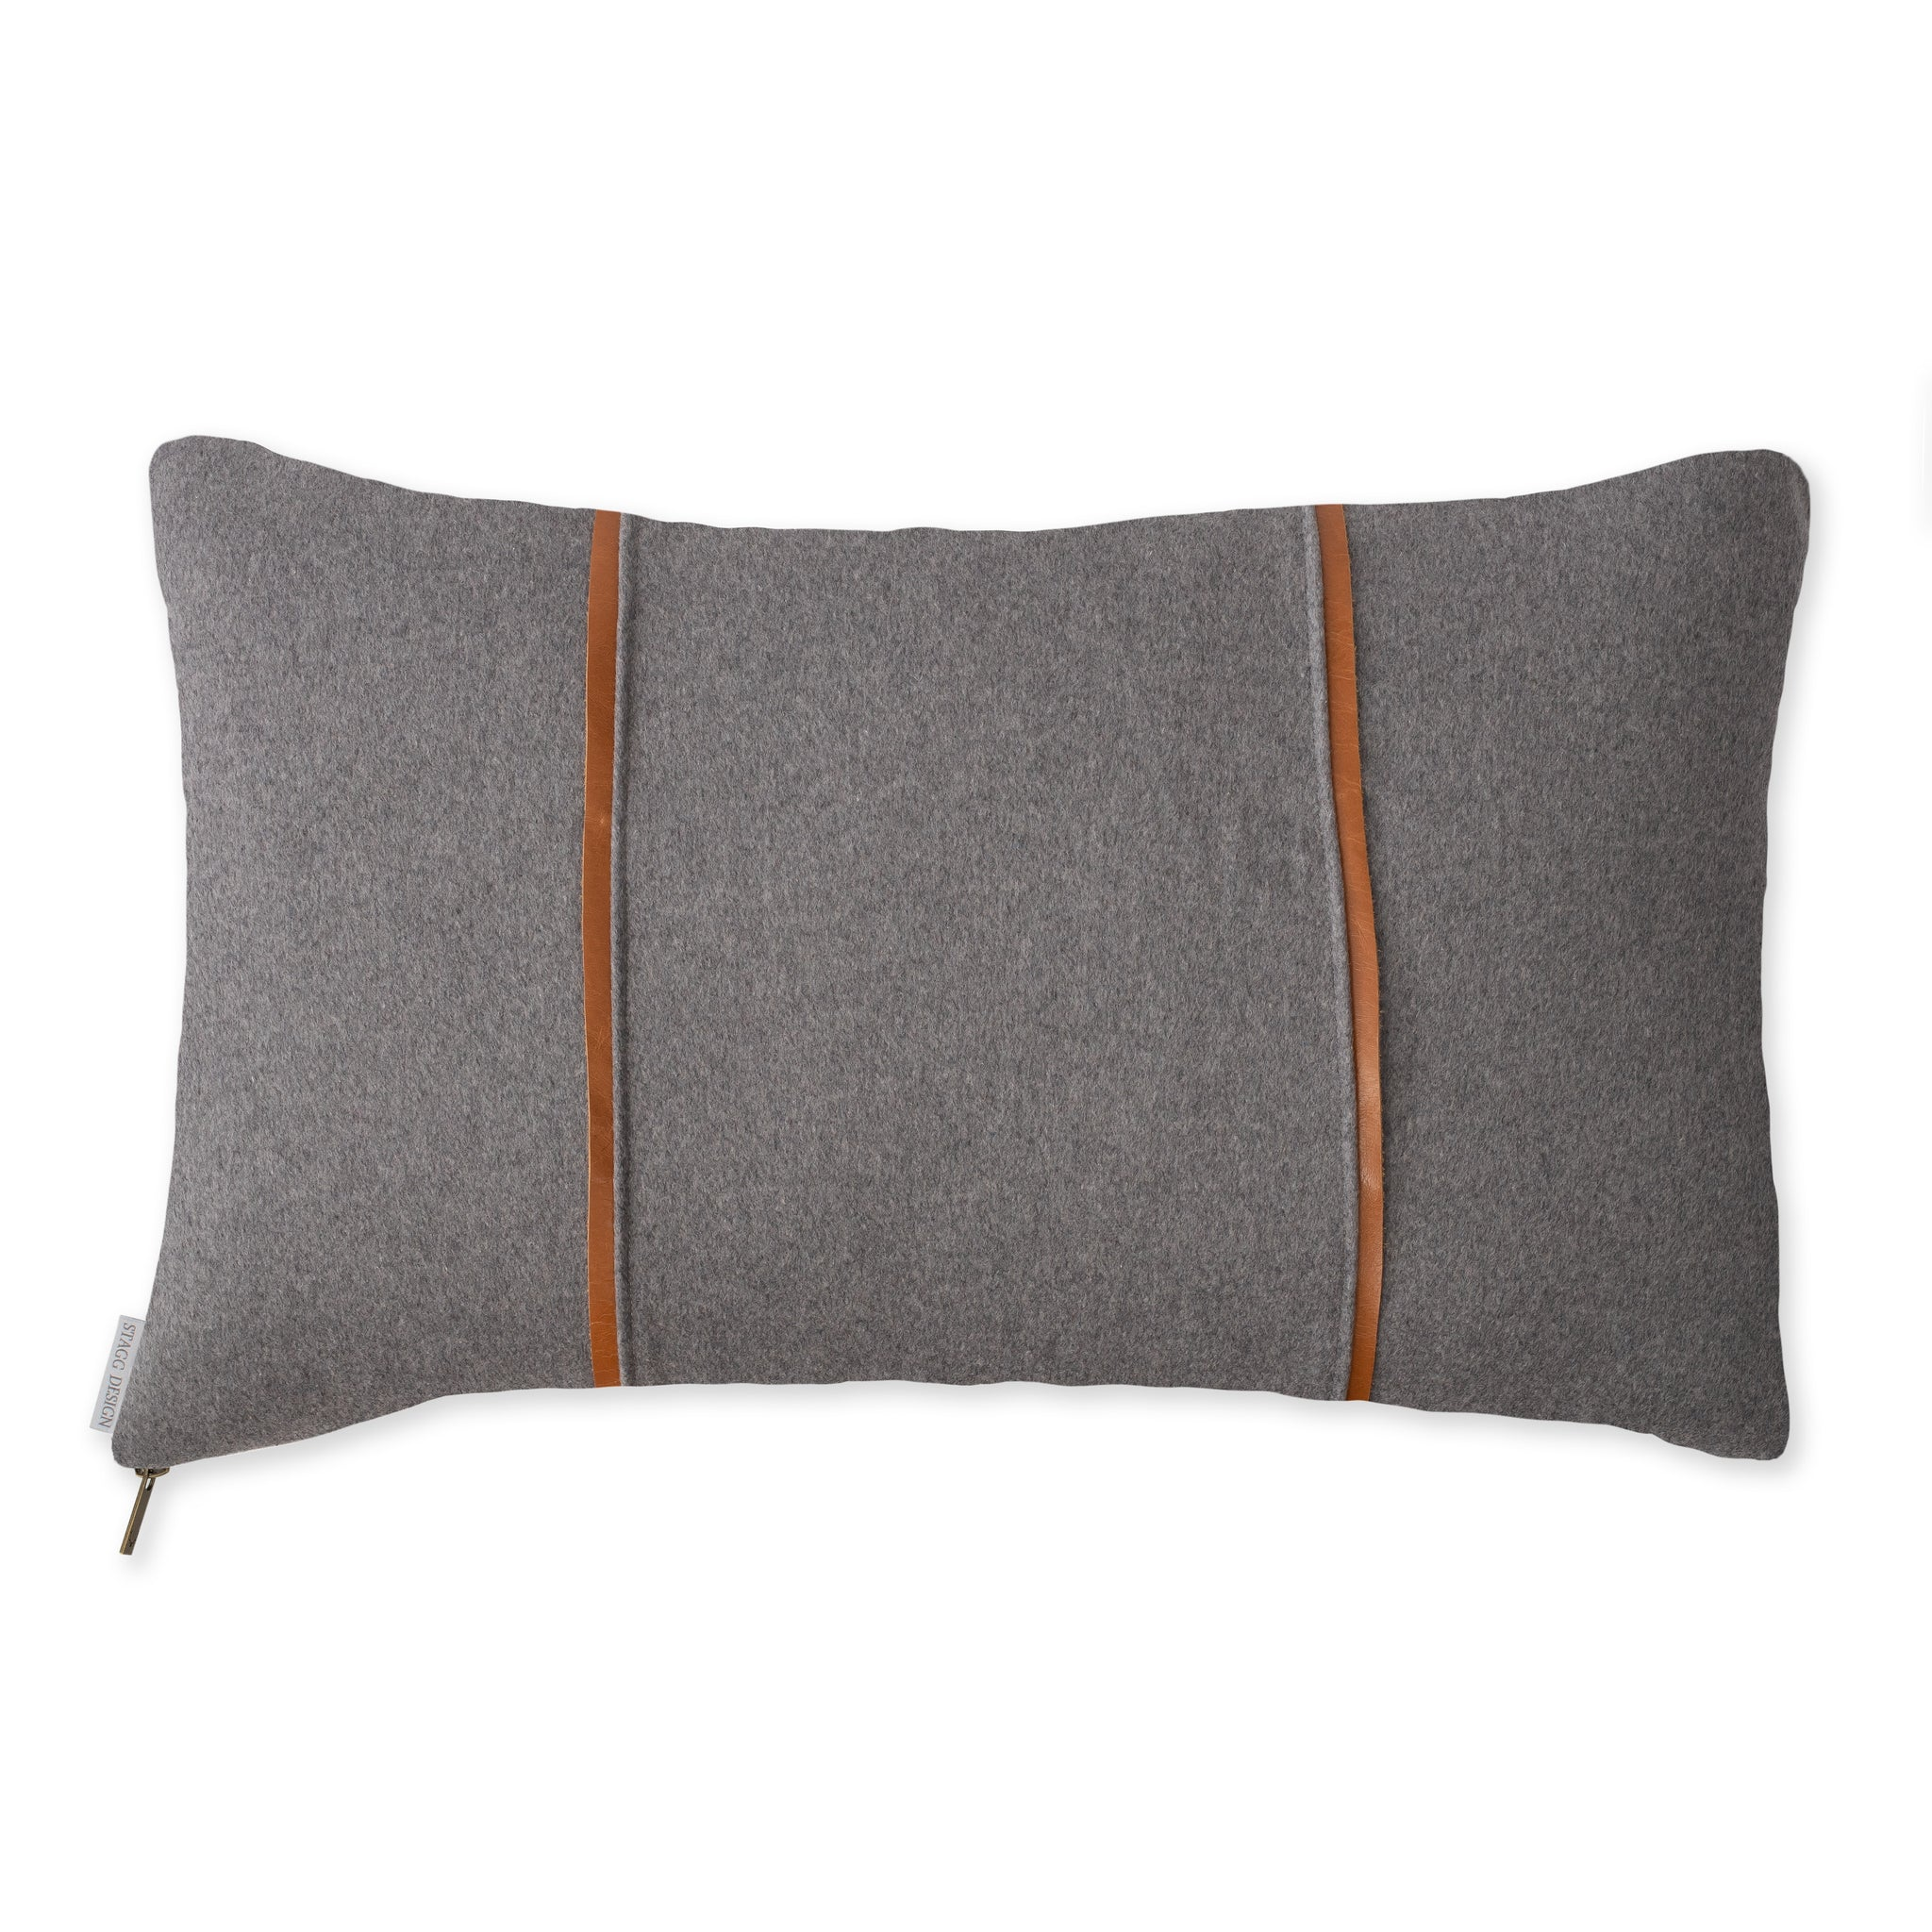 Spruce Pillow - Ash Grey